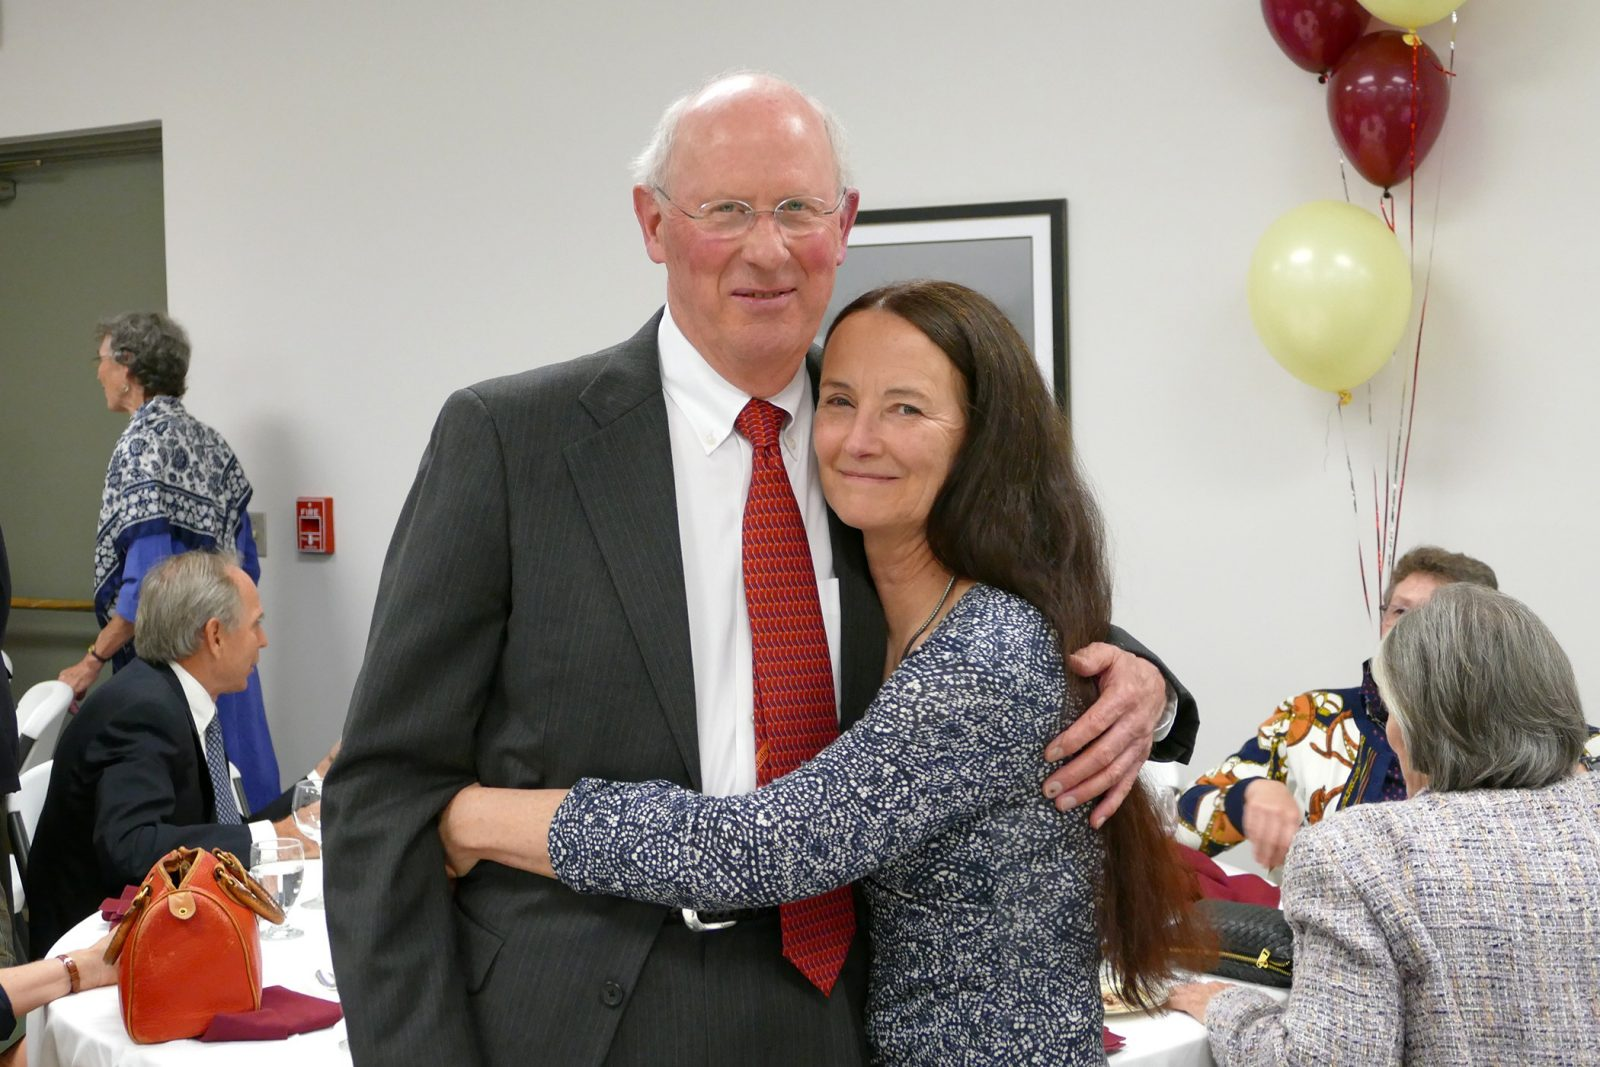 Dr. Nate White and his wife, Dr. Leslie Sinn